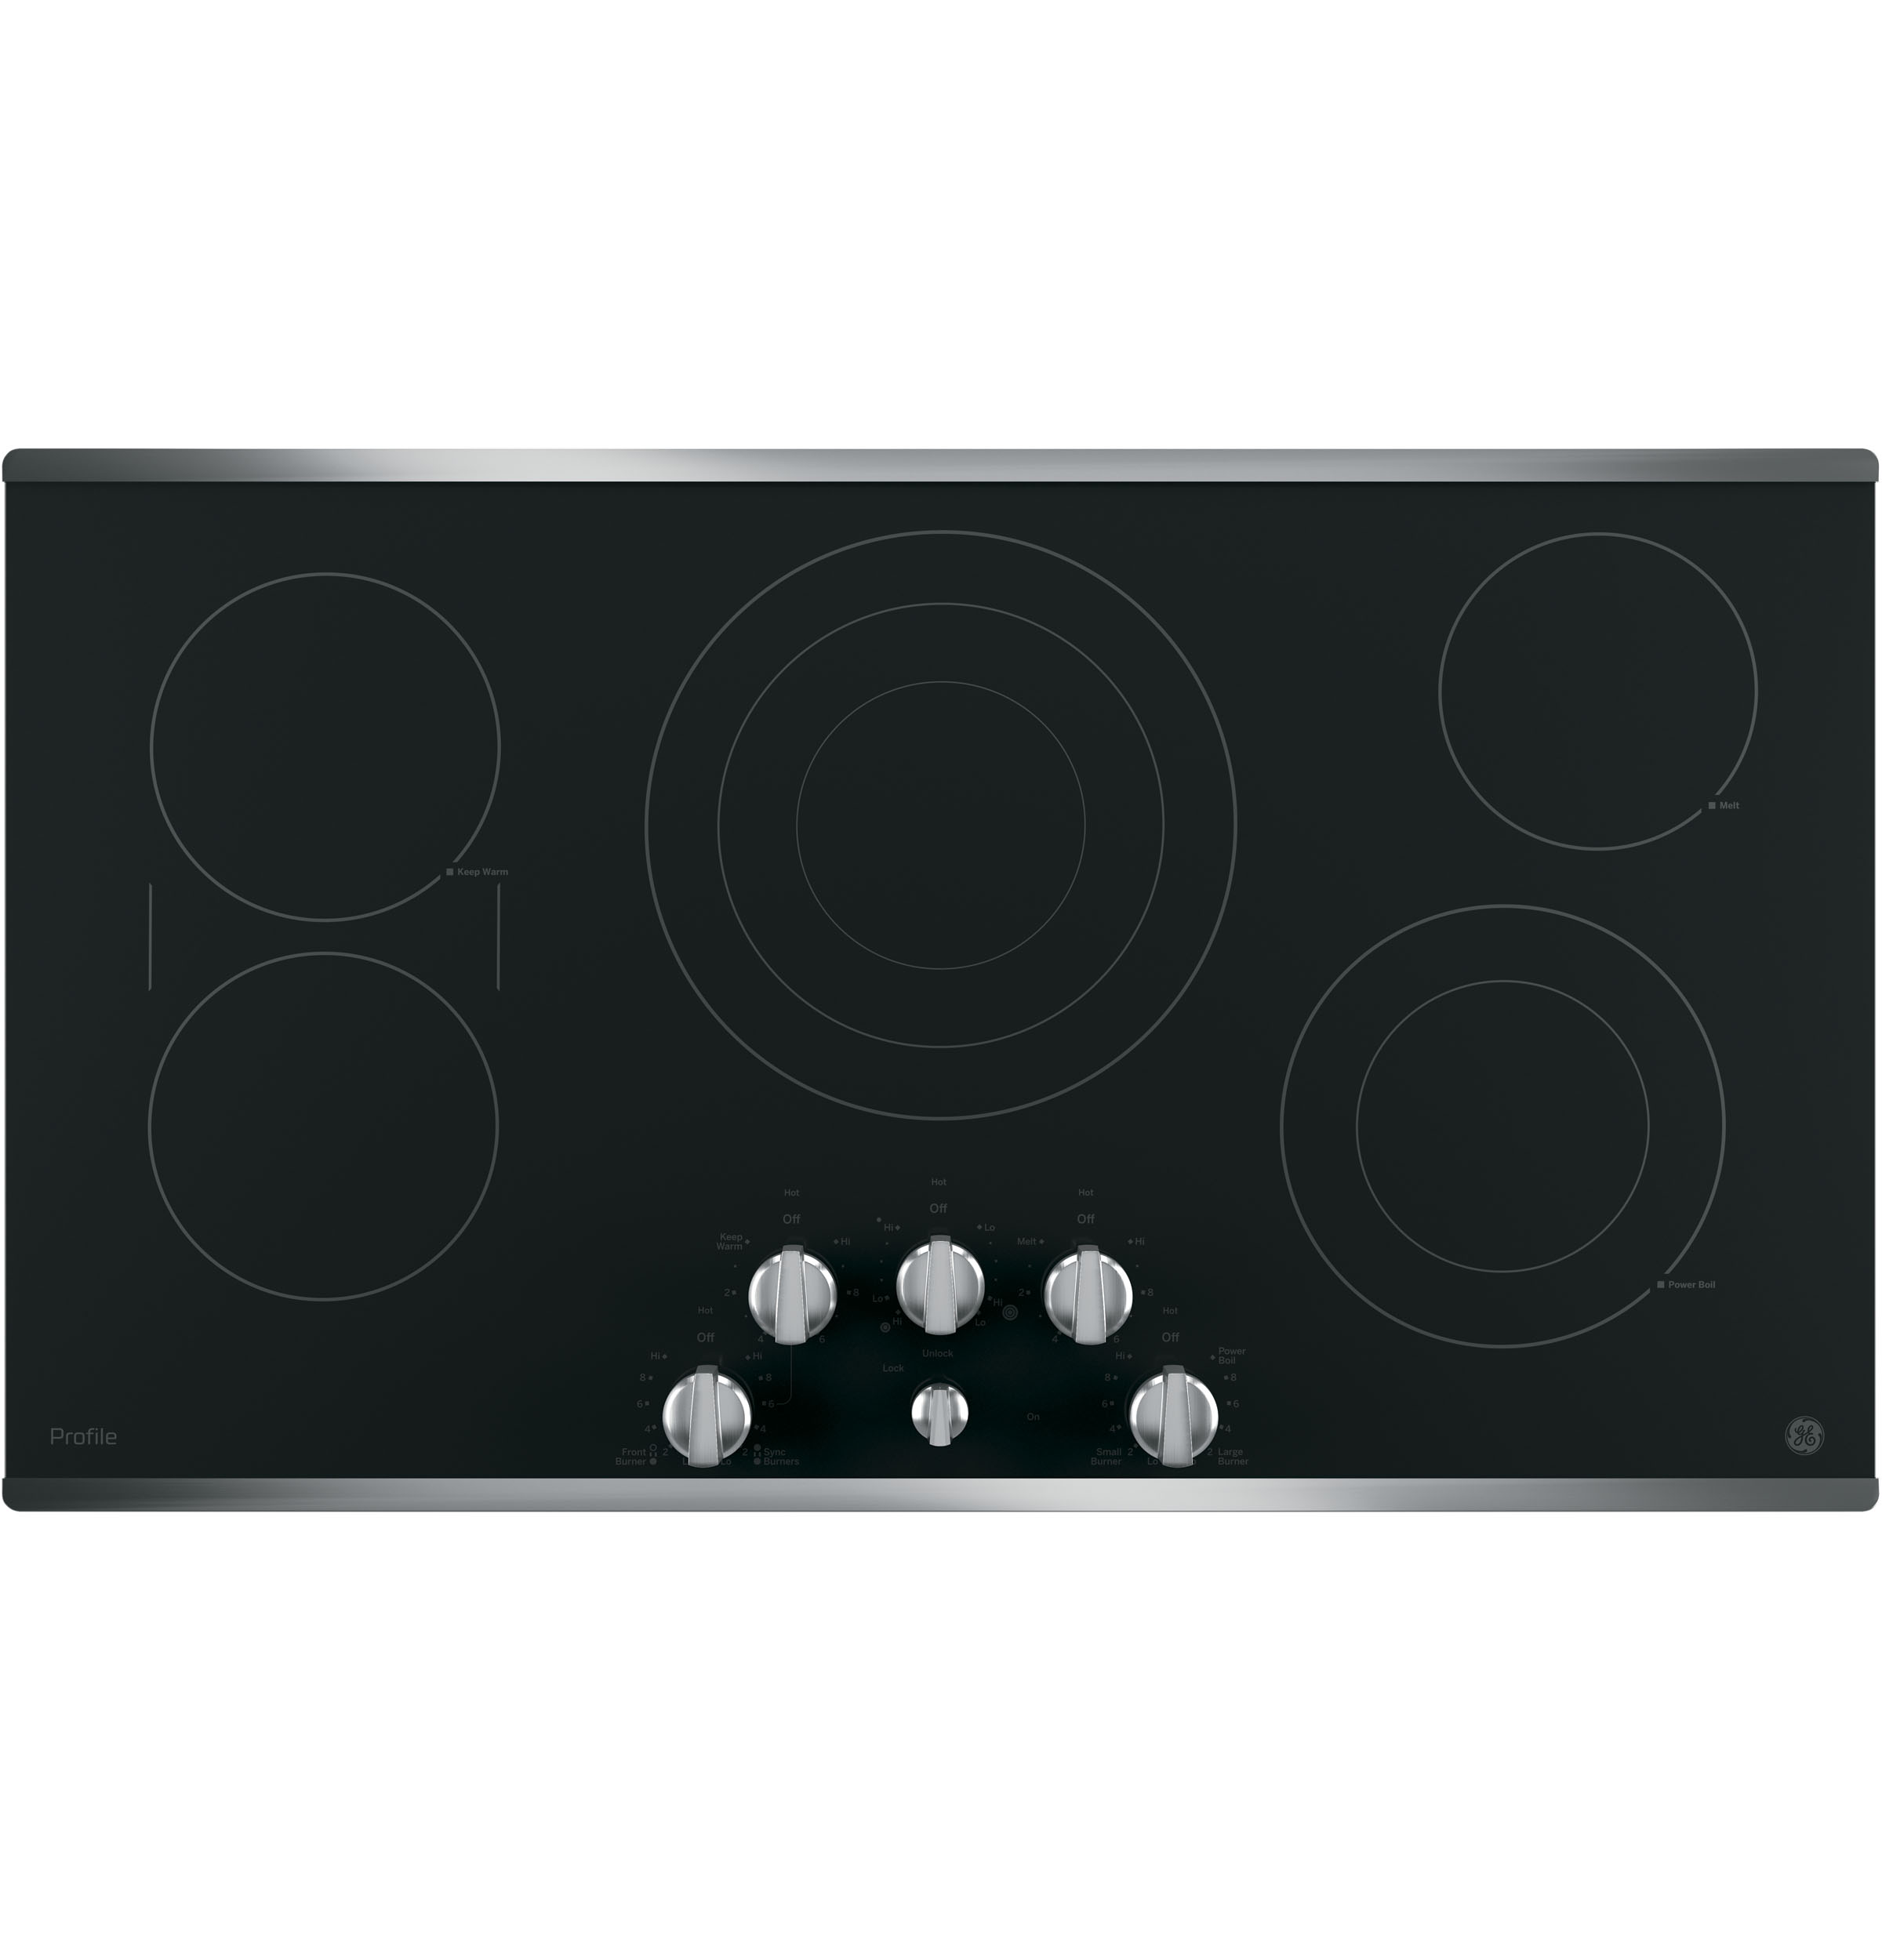 Ge Profile Series 36 Built In Knob Control Cooktop Pp7036sjss Wiring Diagram 240v Product Image